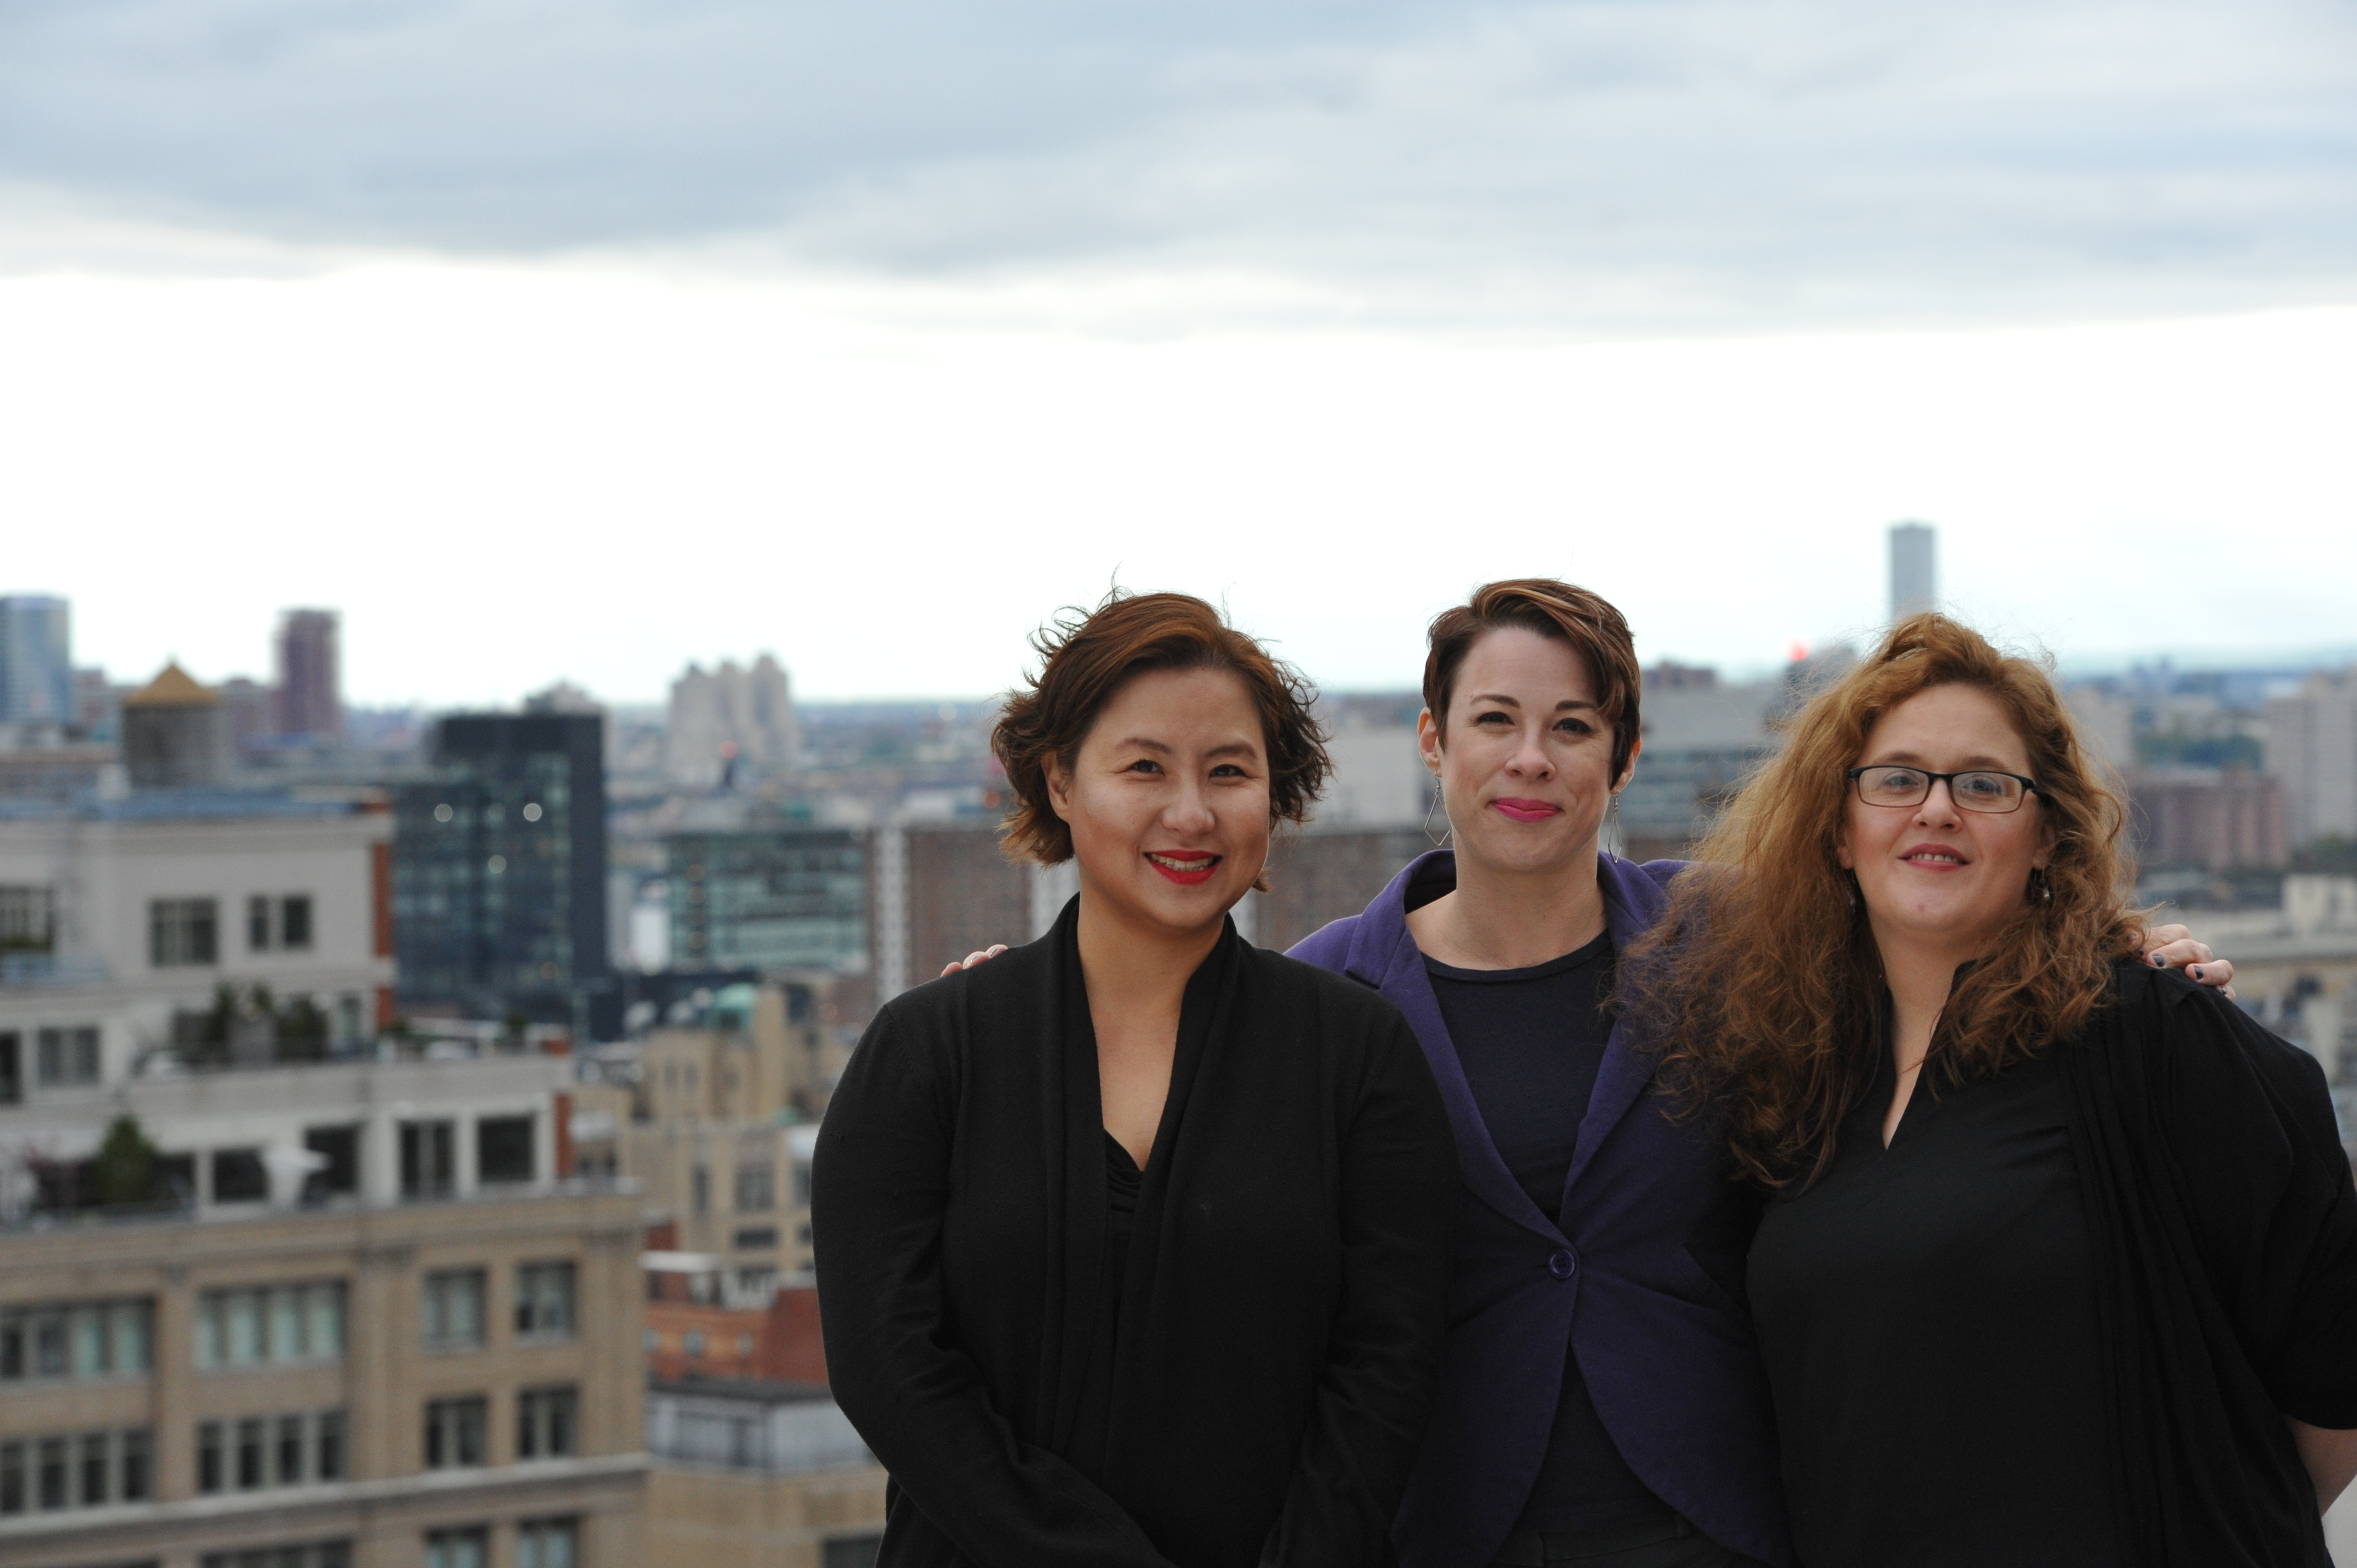 (Left to Right) A portrait of Jennifer Choi, Rachel Ford and Amber Decker.